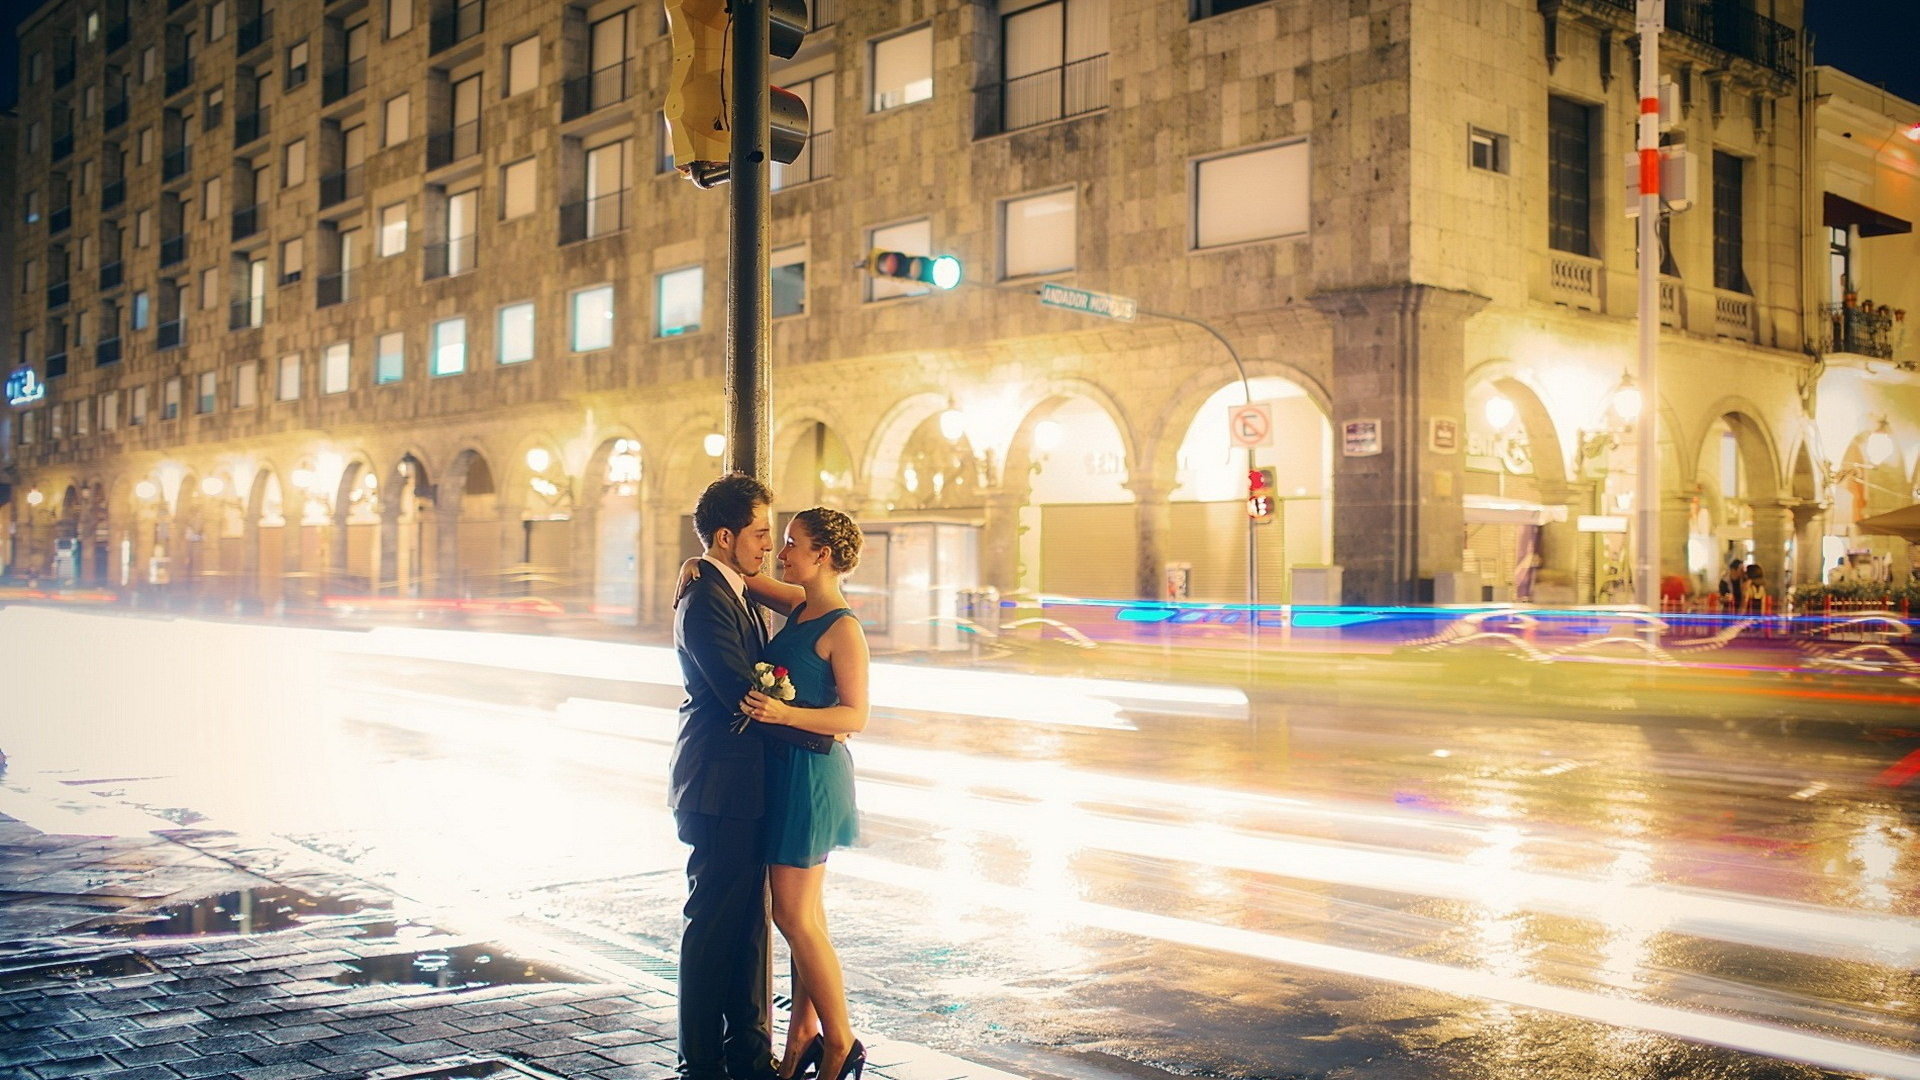 Cartoon Couple Wallpaper Hd Couple Embrace In Time Lapse Street Photography